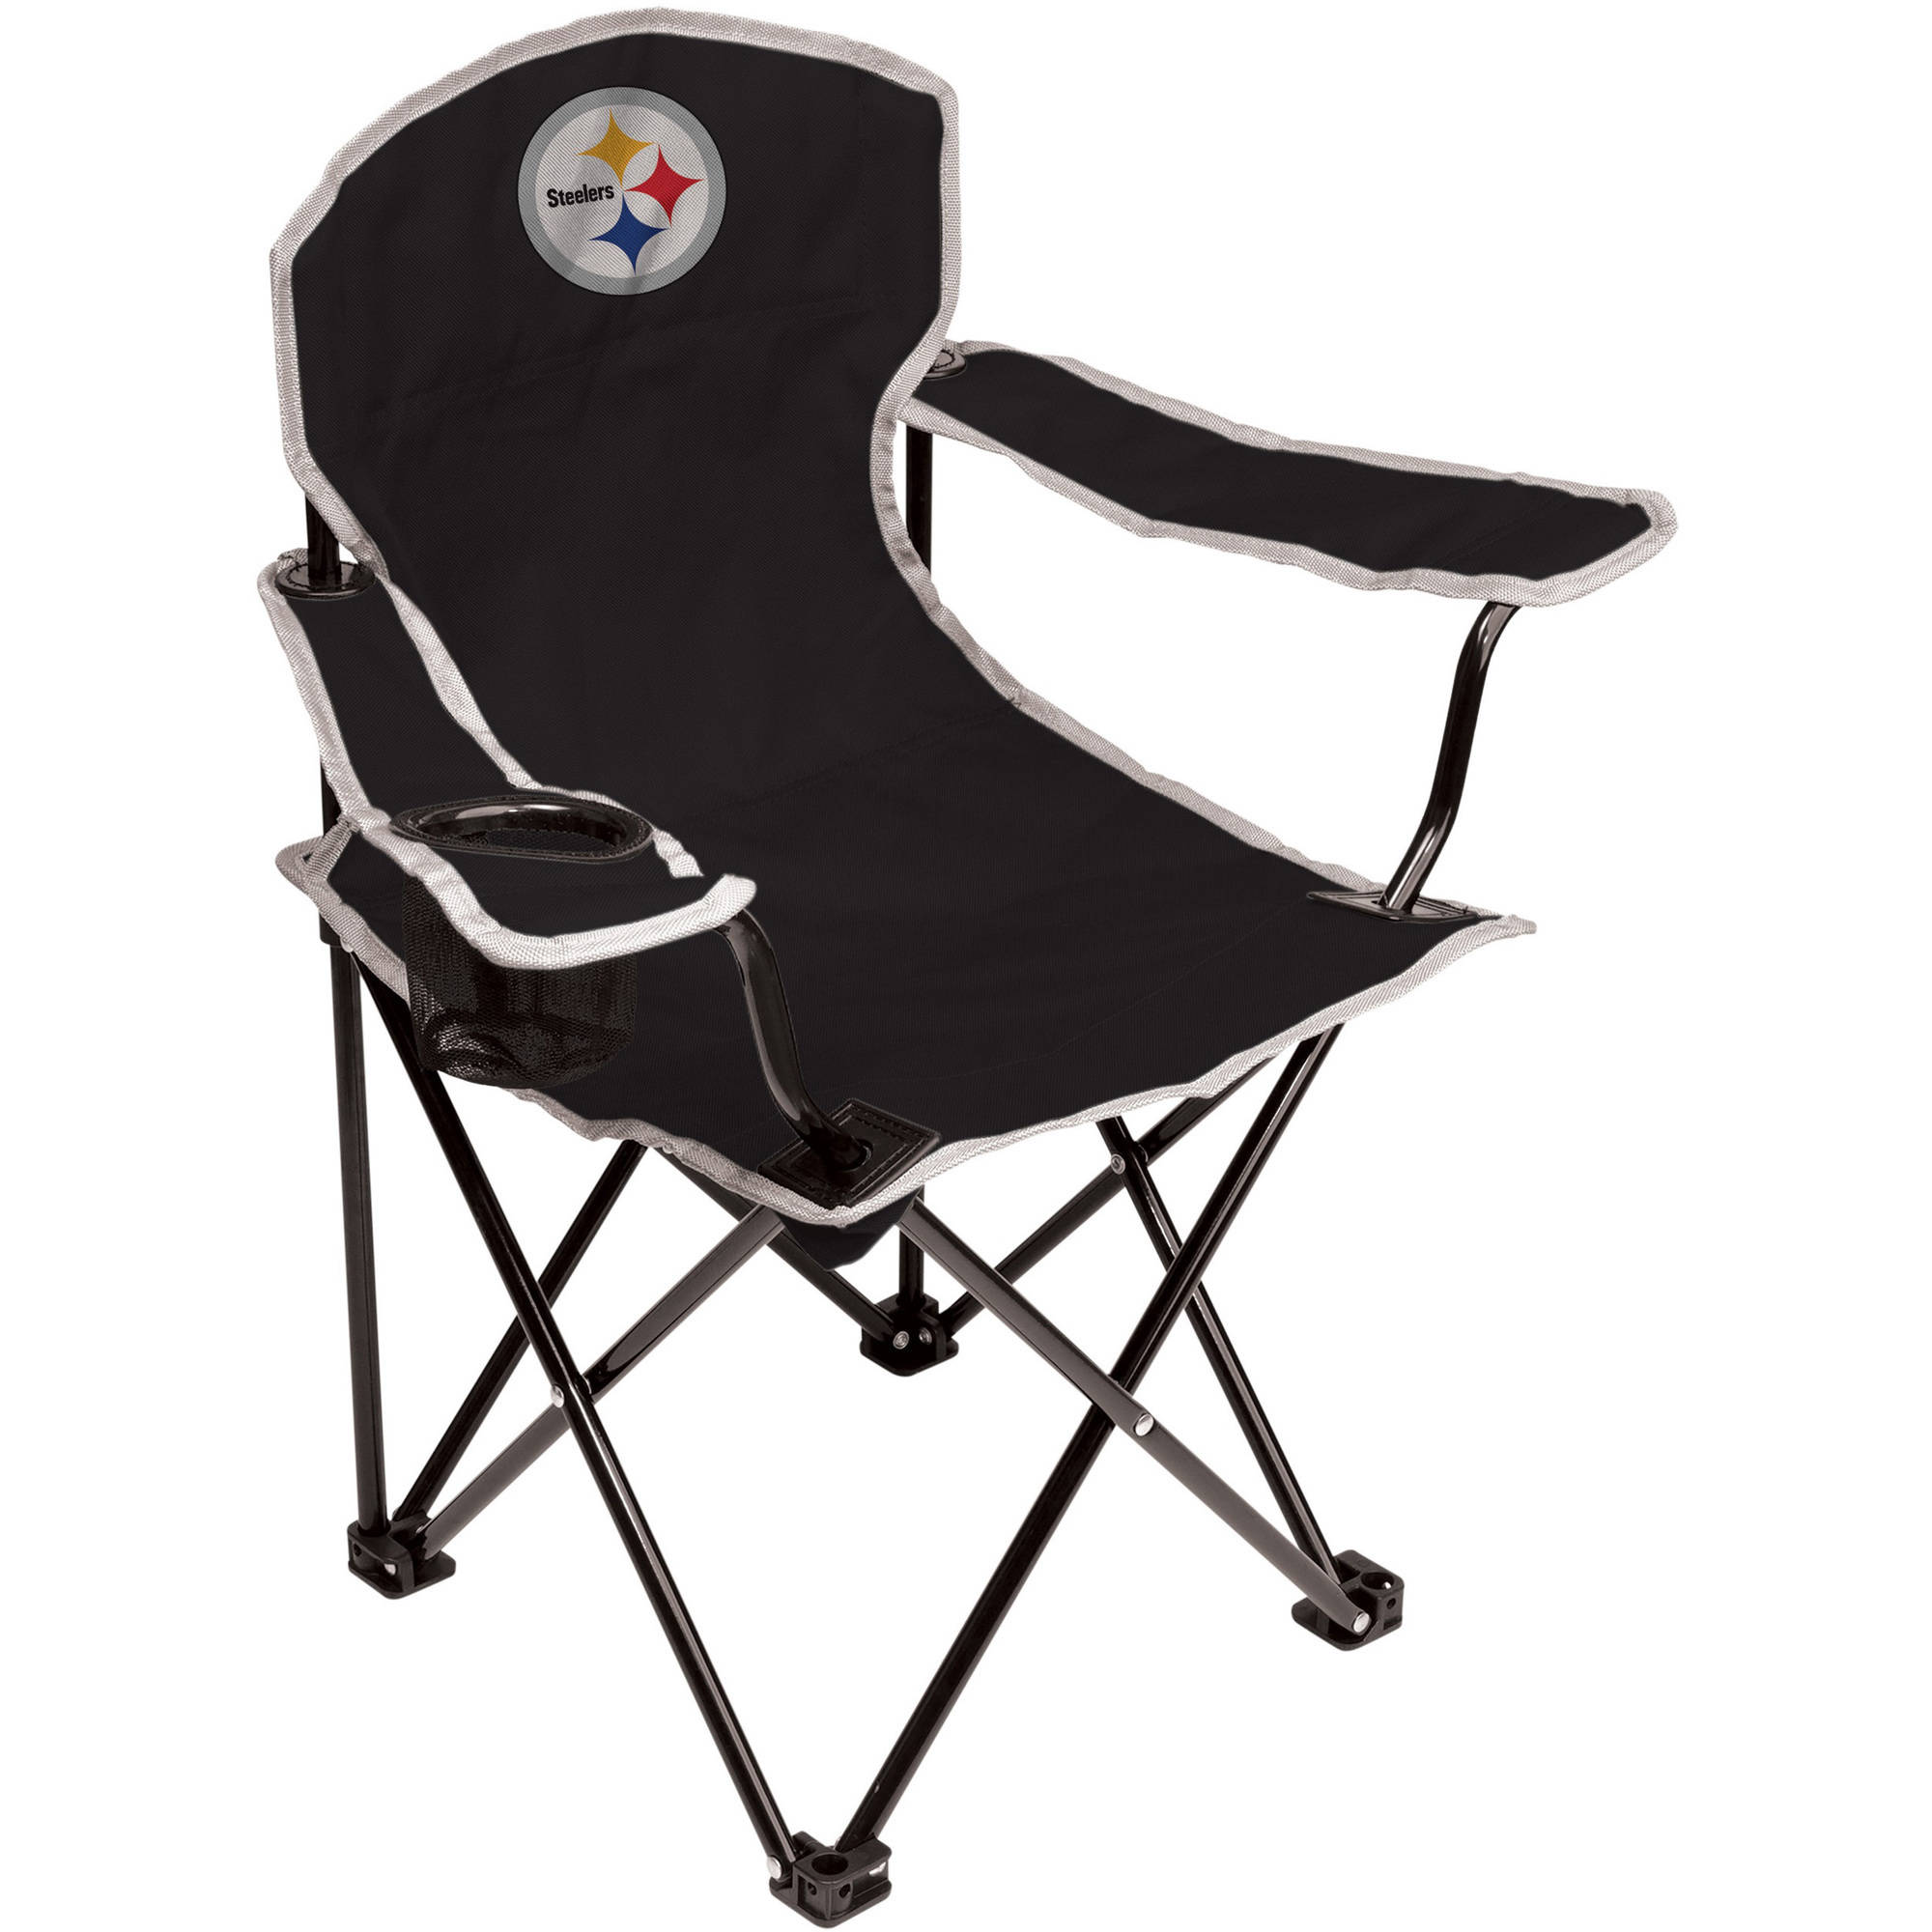 NFL Pittsburgh Steelers Youth Size Tailgate Chair From Coleman By Rawlings